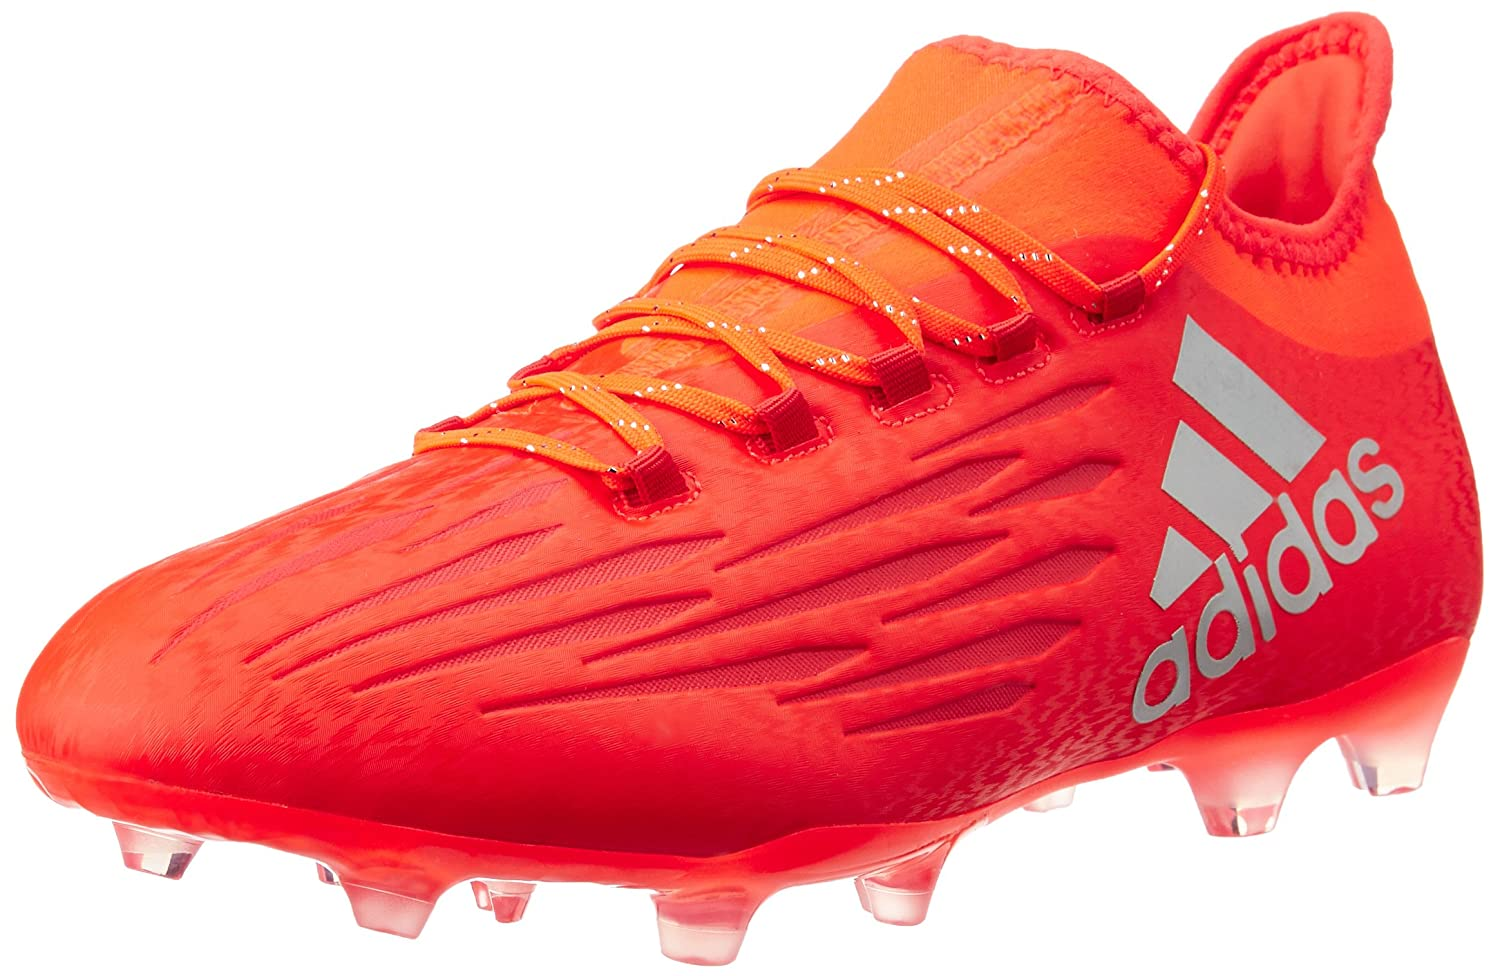 4c9b5ccb9a952 adidas Men s X 16.2 Fg Football Boots  Amazon.co.uk  Shoes   Bags